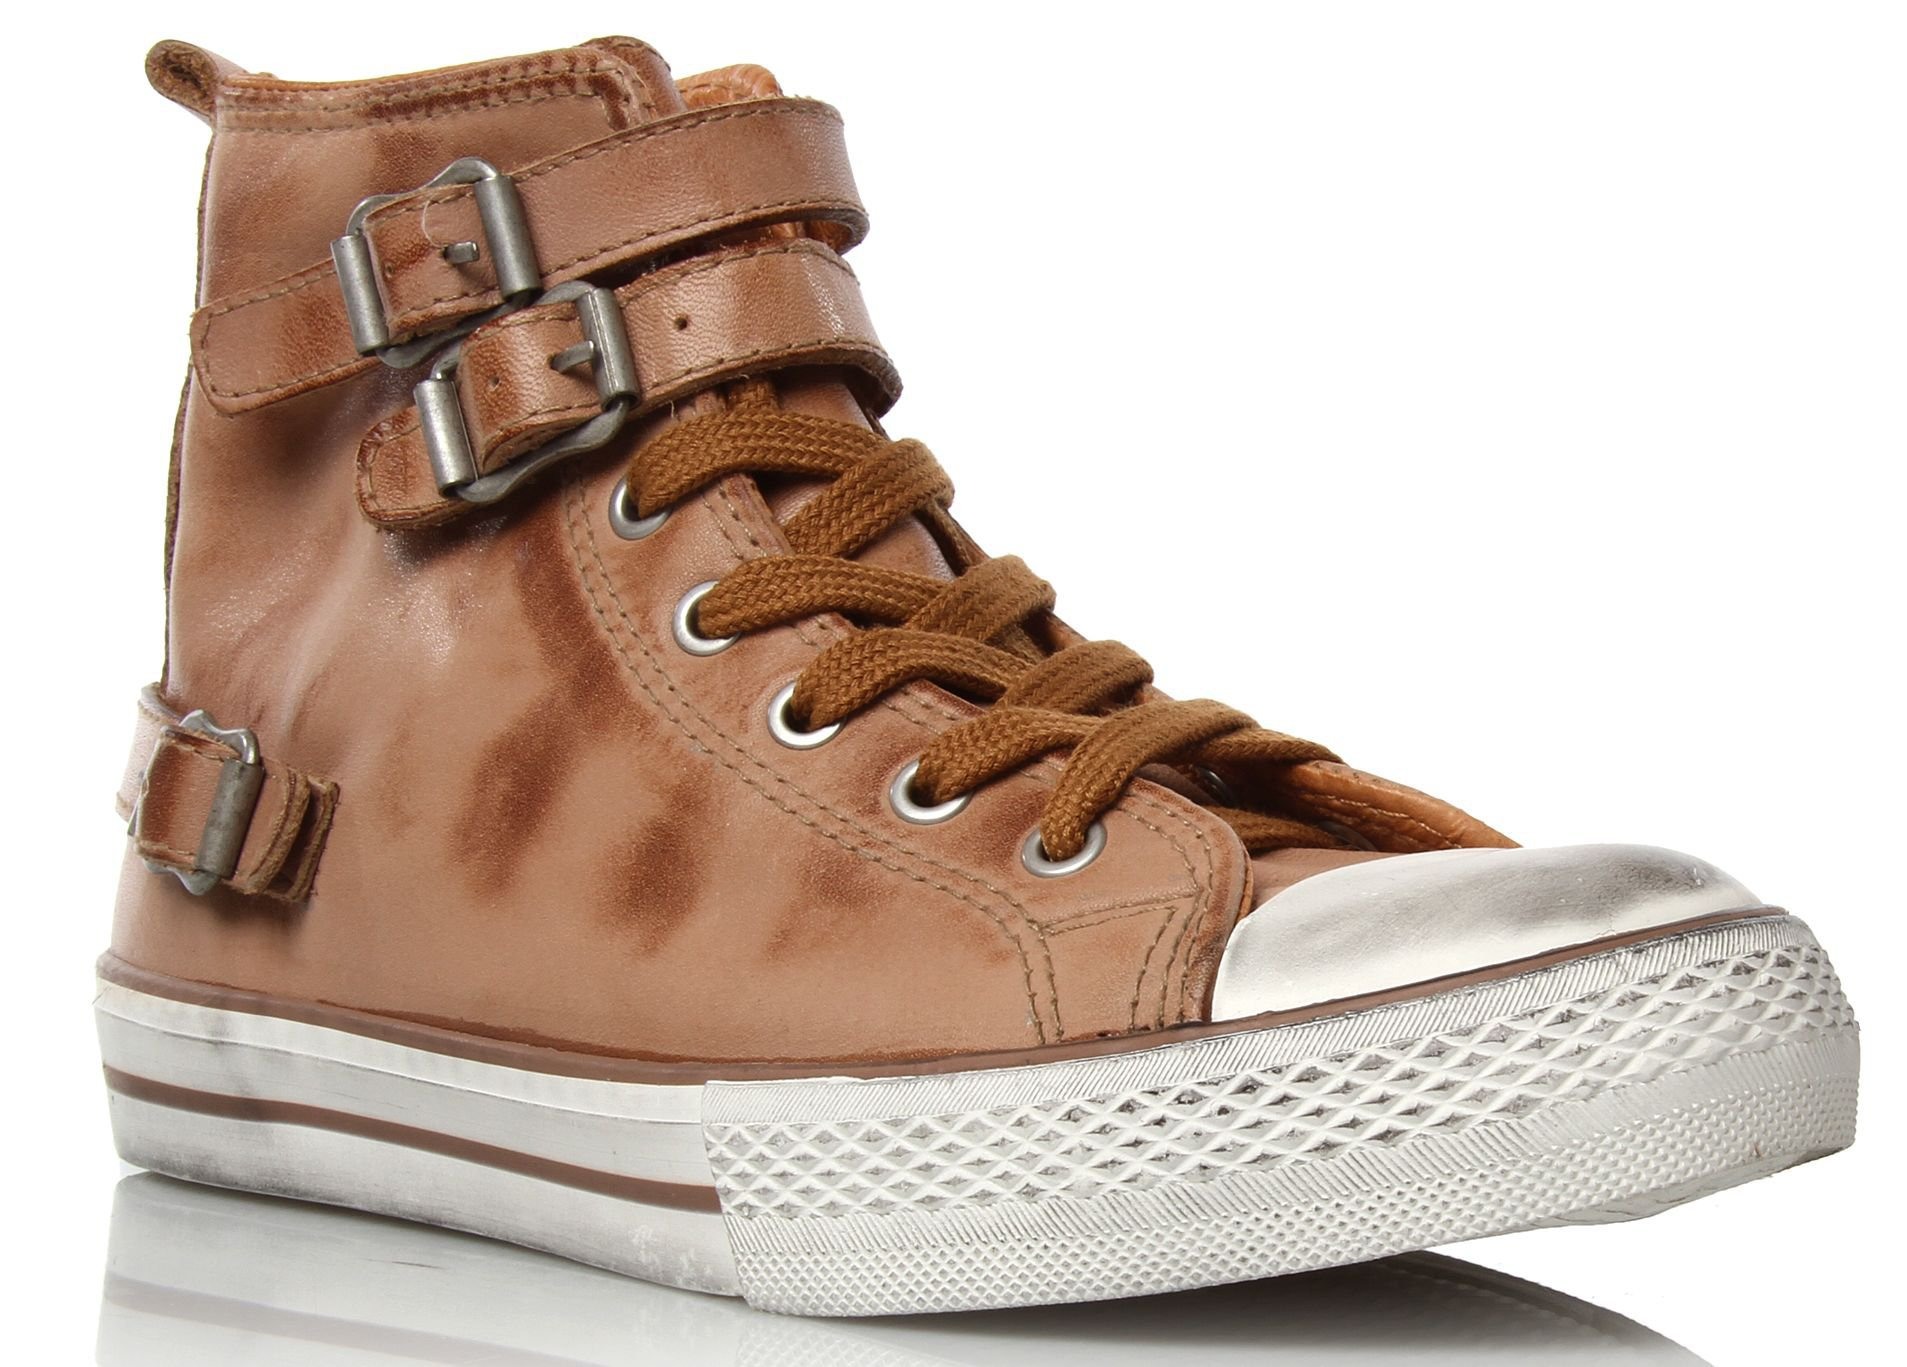 Kurt Geiger Laura Sneakers Nude - House of Fraser